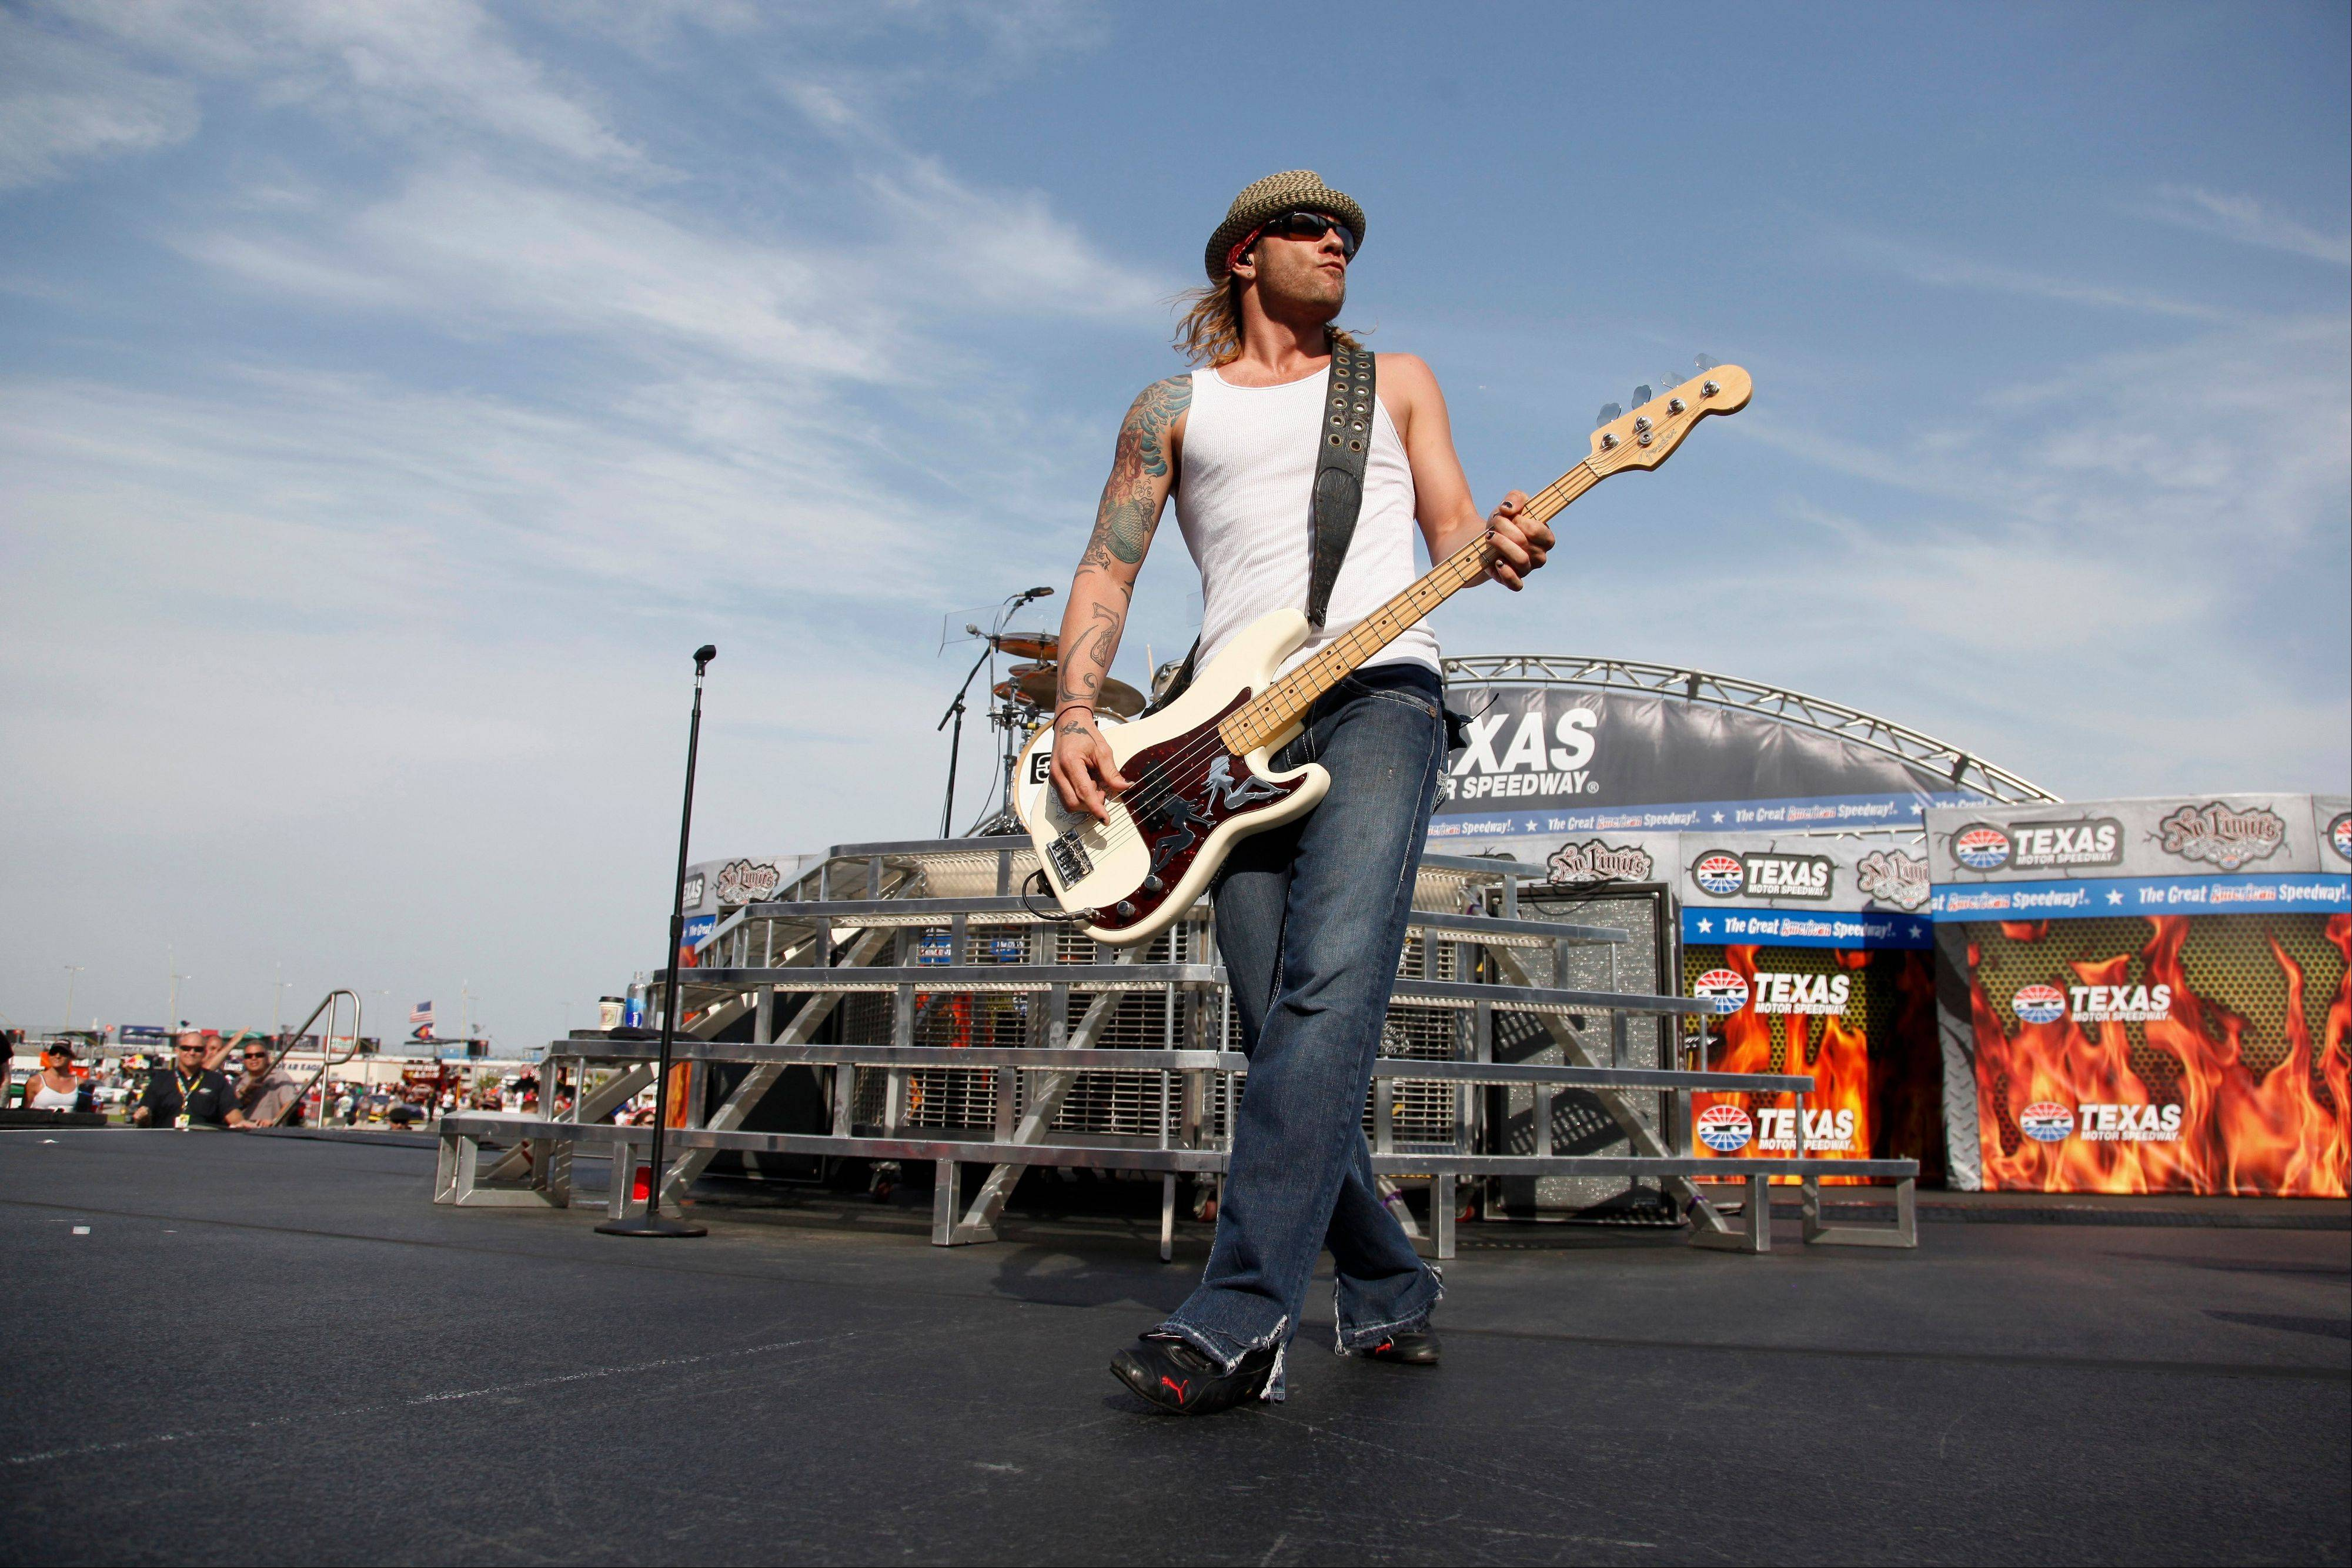 3 Doors Down' bassist Todd Harrell performs before a NASCAR race at Texas Motor Speedway in Fort Worth, Texas, in 2011. Harrell has been charged with vehicular homicide by intoxication in a fatal crash near Nashville.